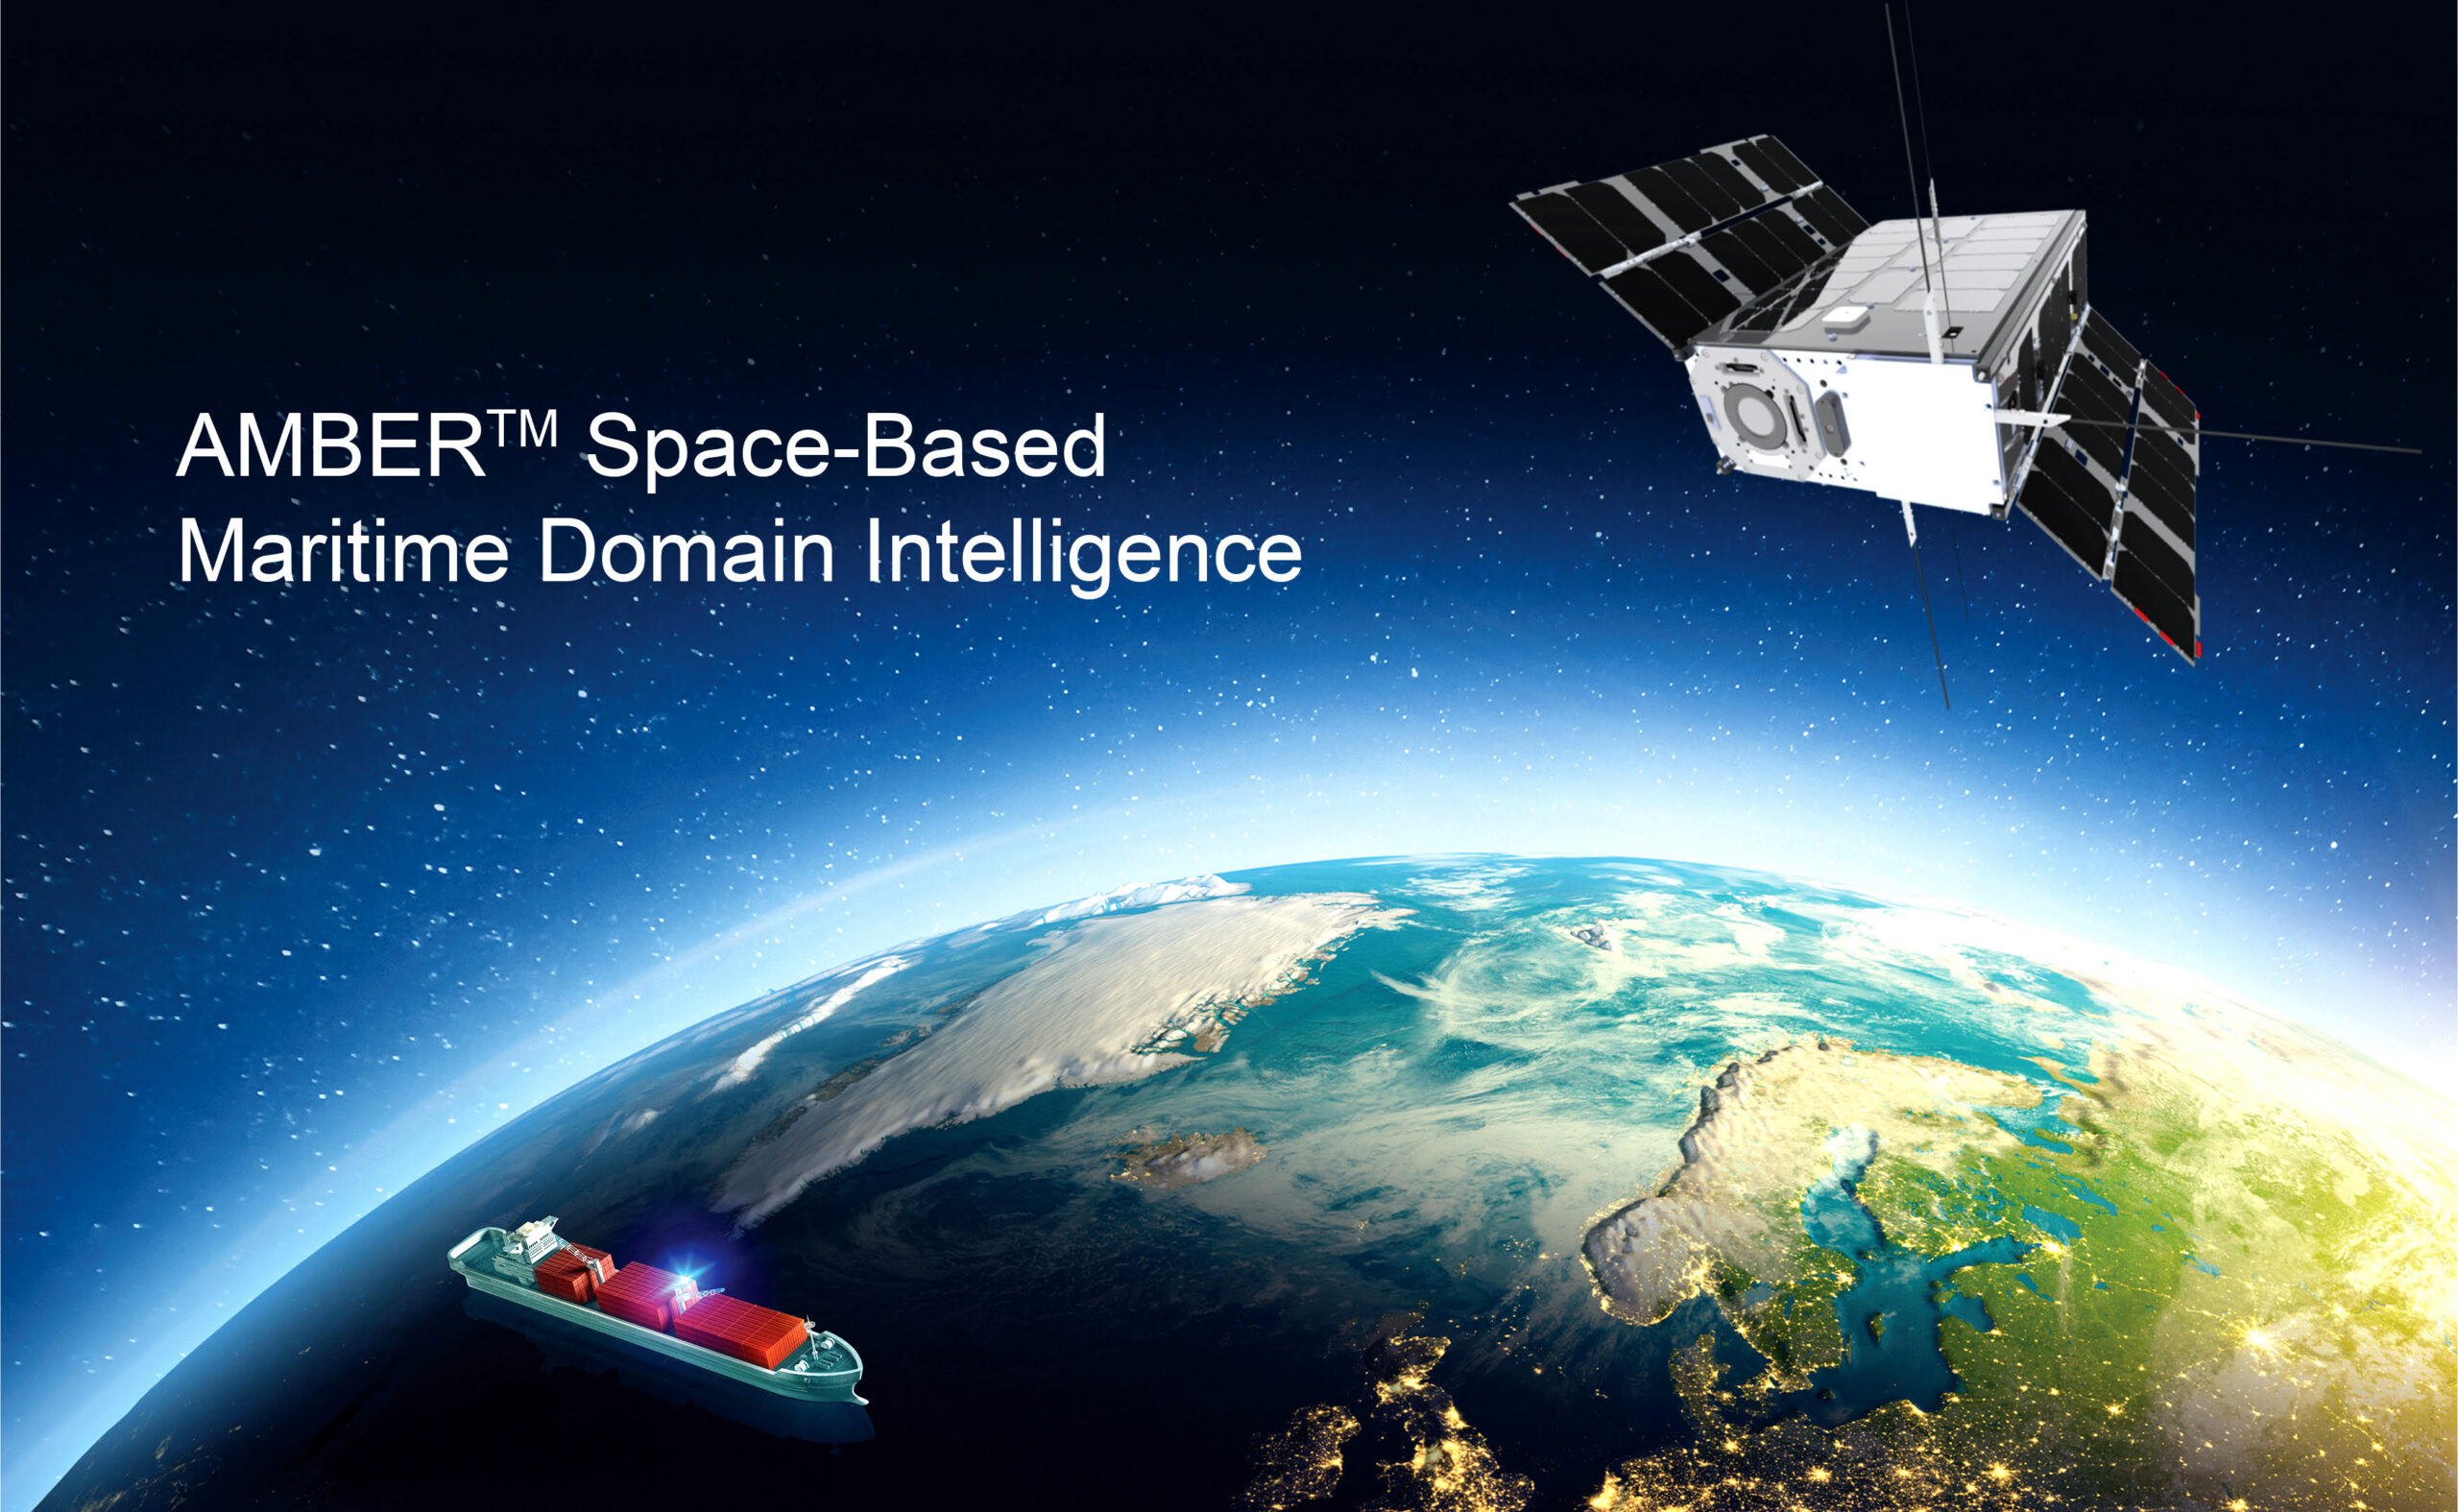 Horizon Technologies has shipped the first AMBER™ CubeSat payload to AAC Clyde Space in Glasgow, Scotland.